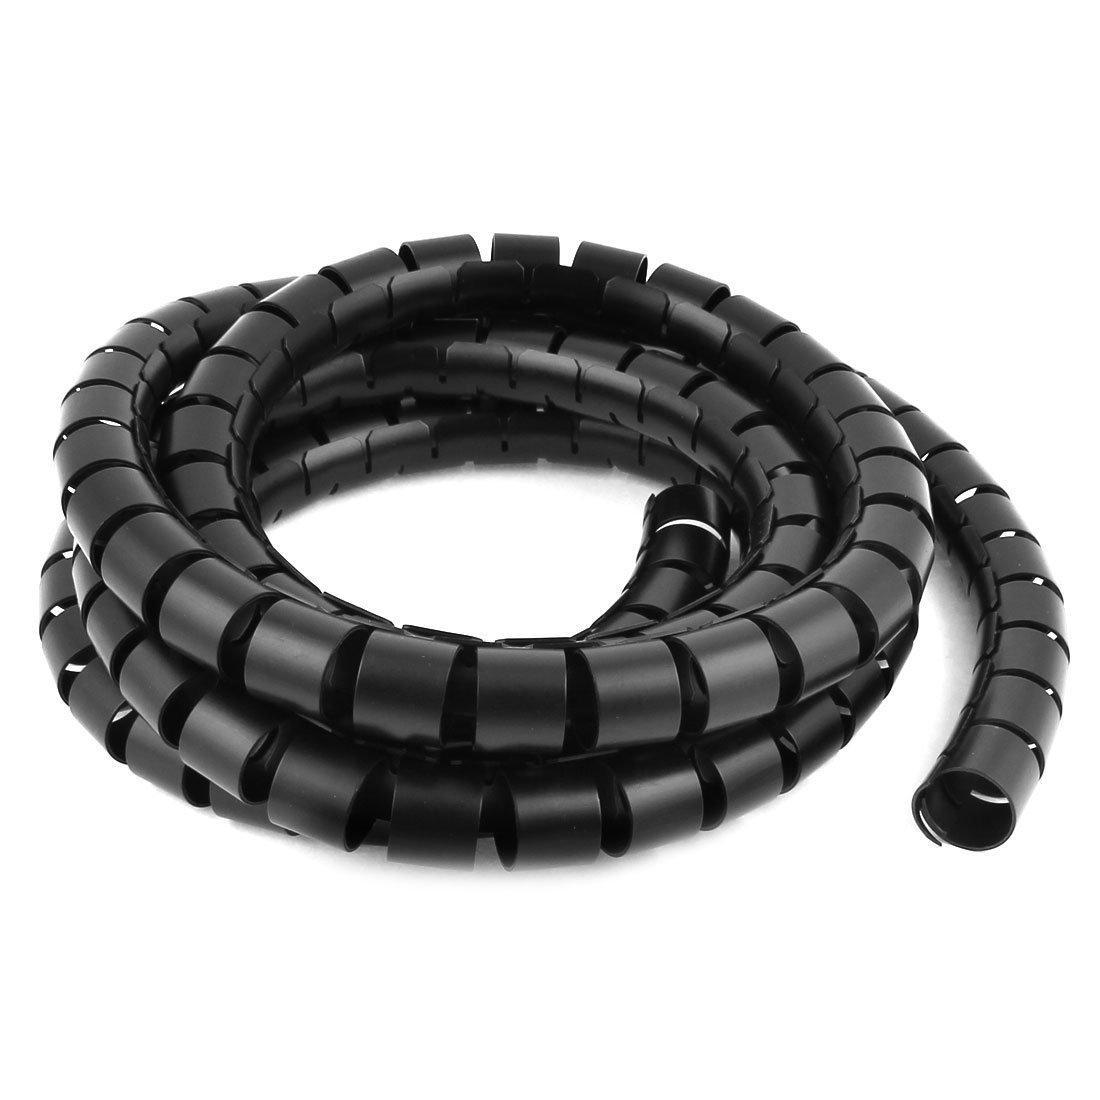 WSFS Hot Spiral Tube Cable Wire Wrap Computer Cord Management 30mmx3M Black